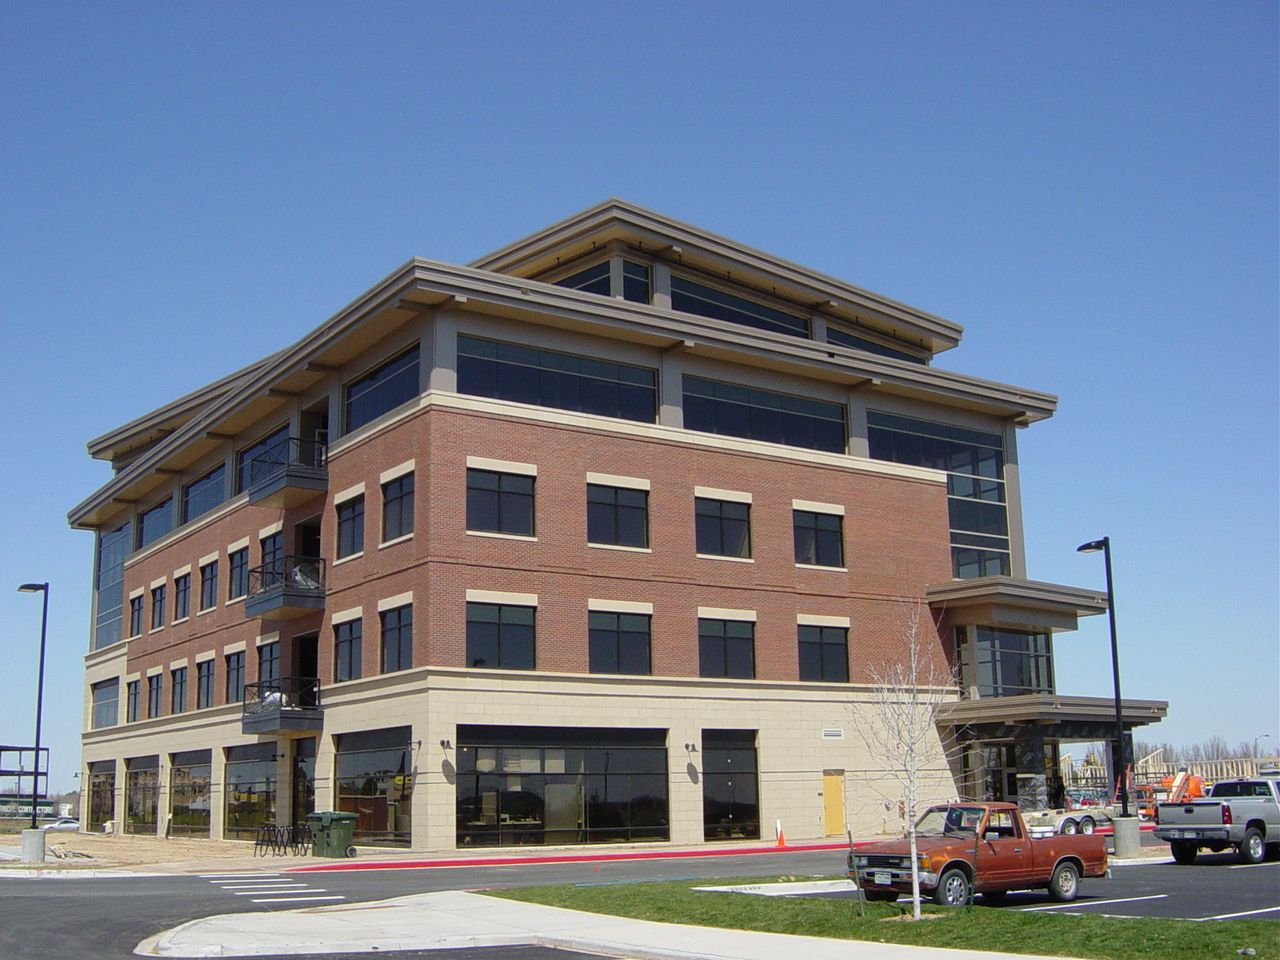 Top Discovery Building Bank of Colorado Harmony One Office Building The  Neenan Company   Corporate Offices Hewlett Packard Office207 best Modern Brick Buildings images on Pinterest   Bricks  . Modern Brick Apartment Building. Home Design Ideas